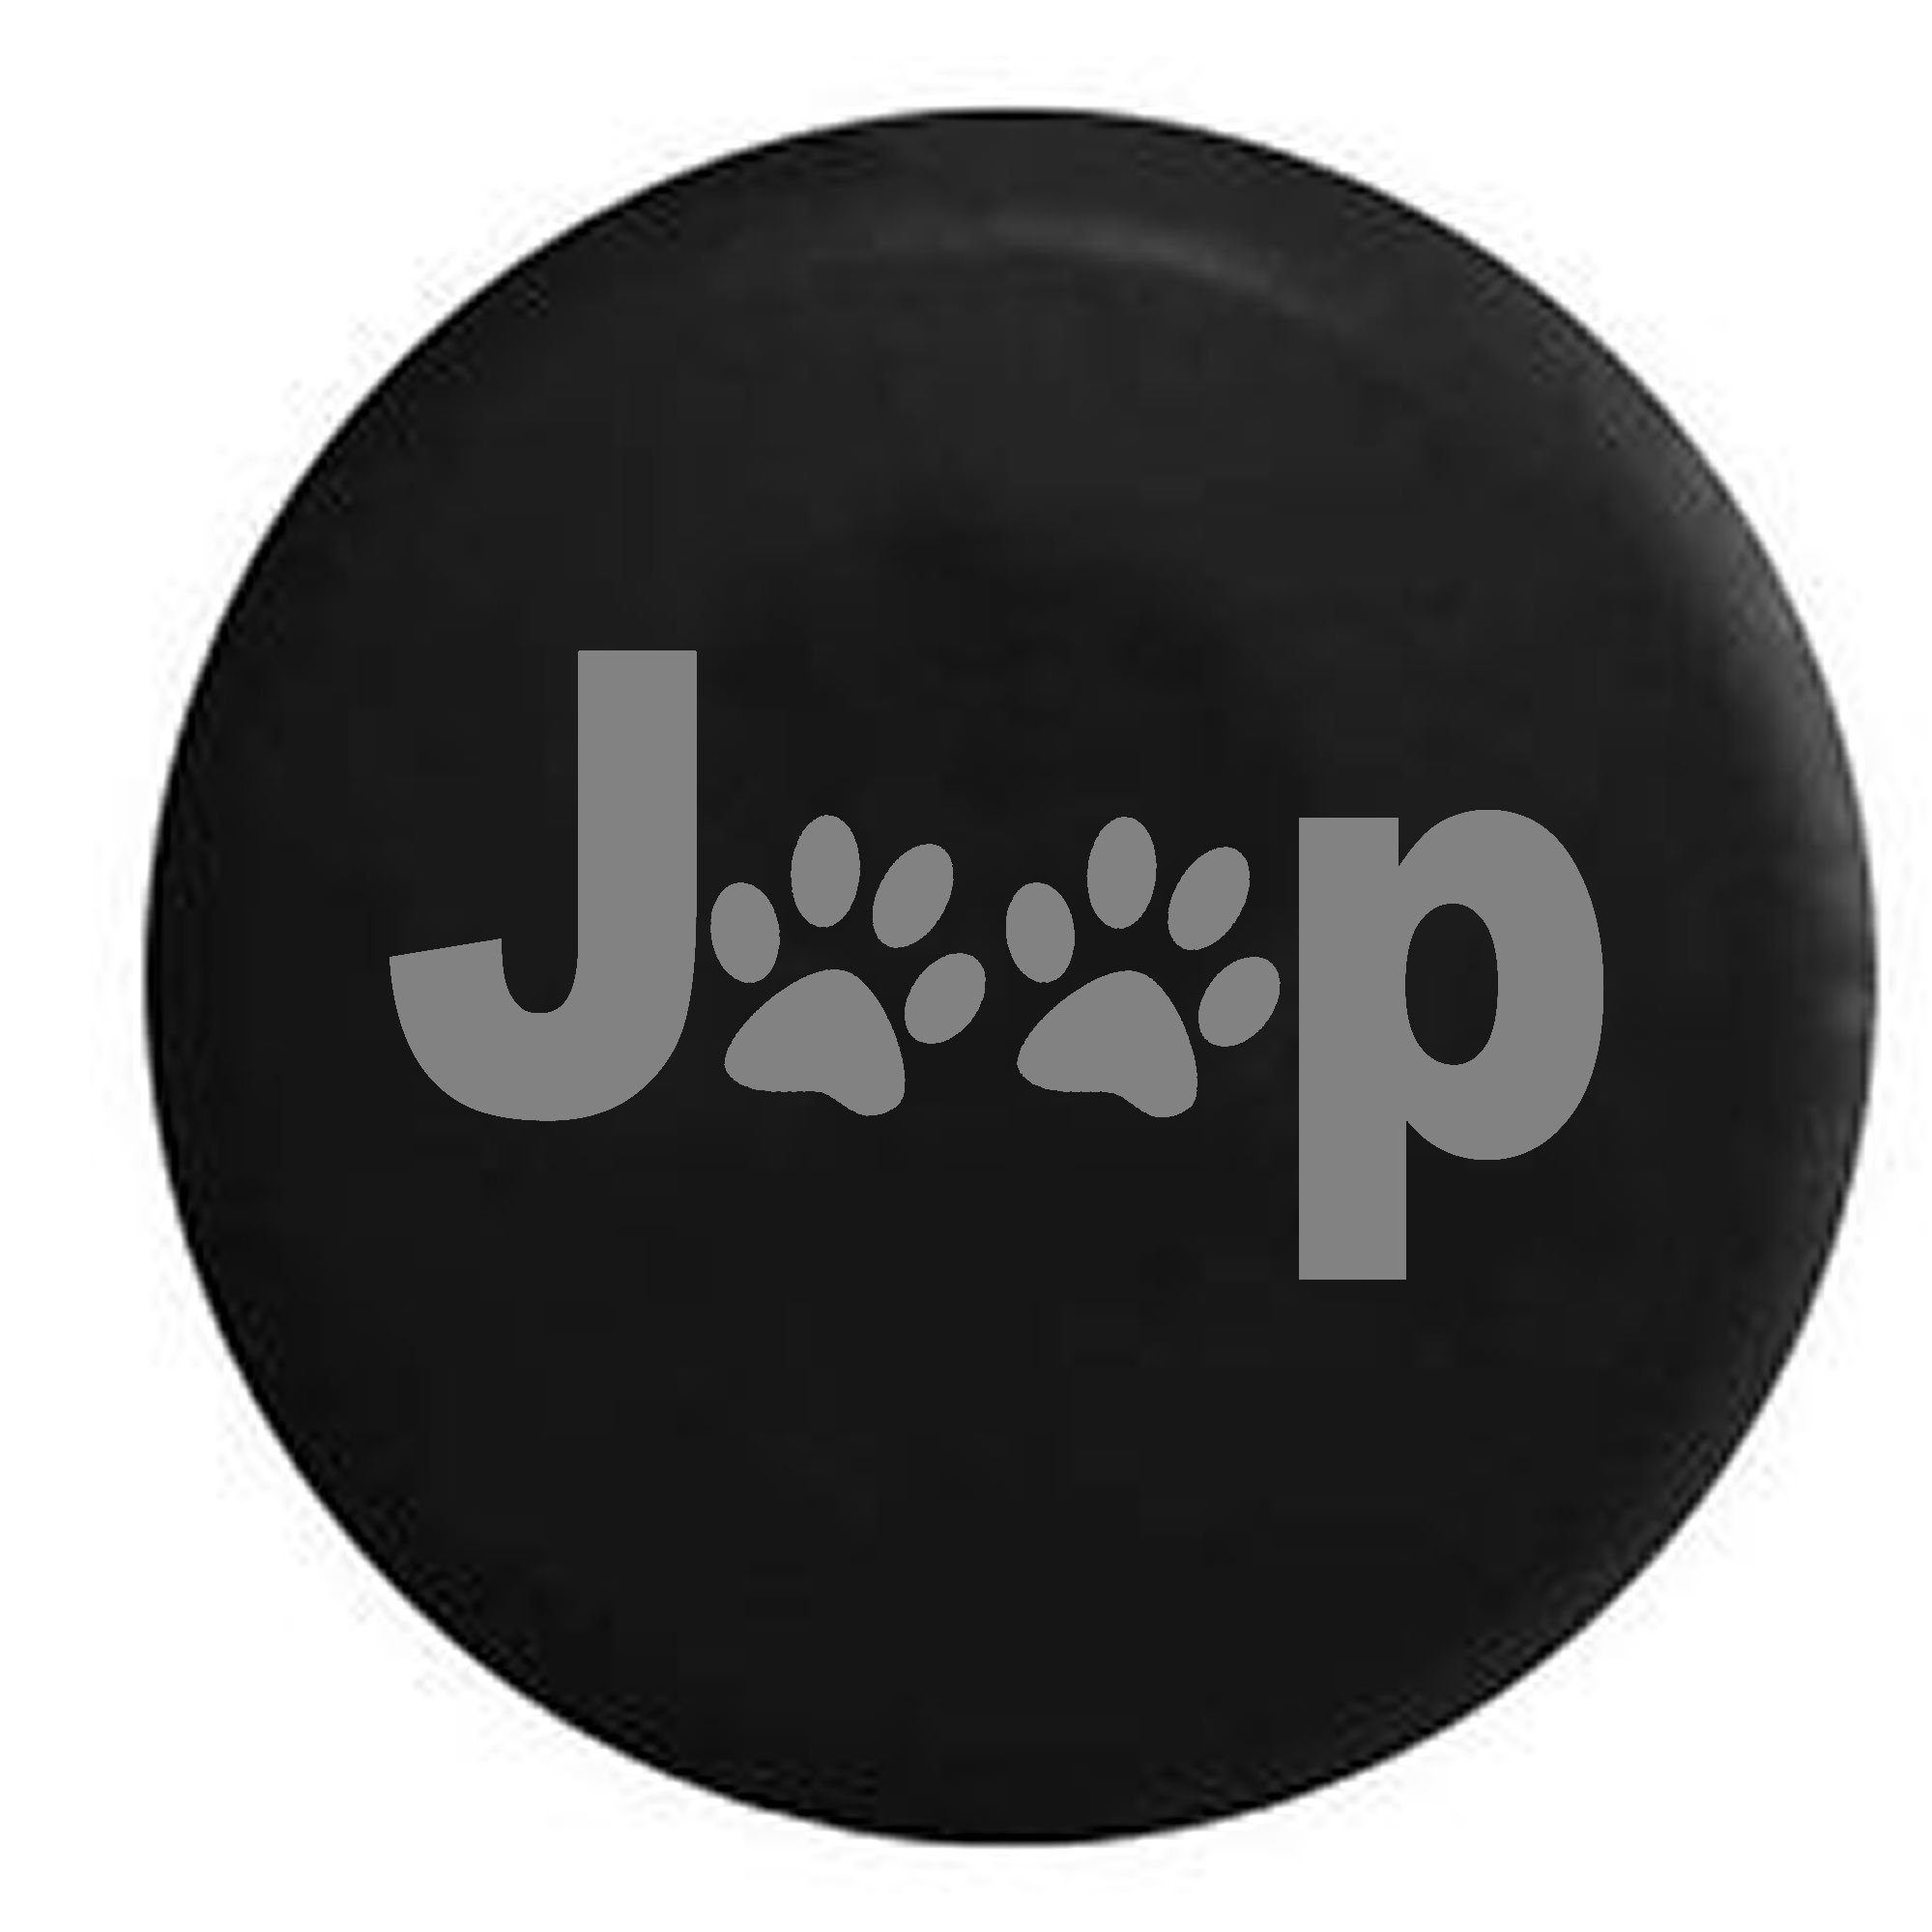 Stealth - Jeep Paw Prints Dog Lover Spare Tire Cover Black 34-35 in